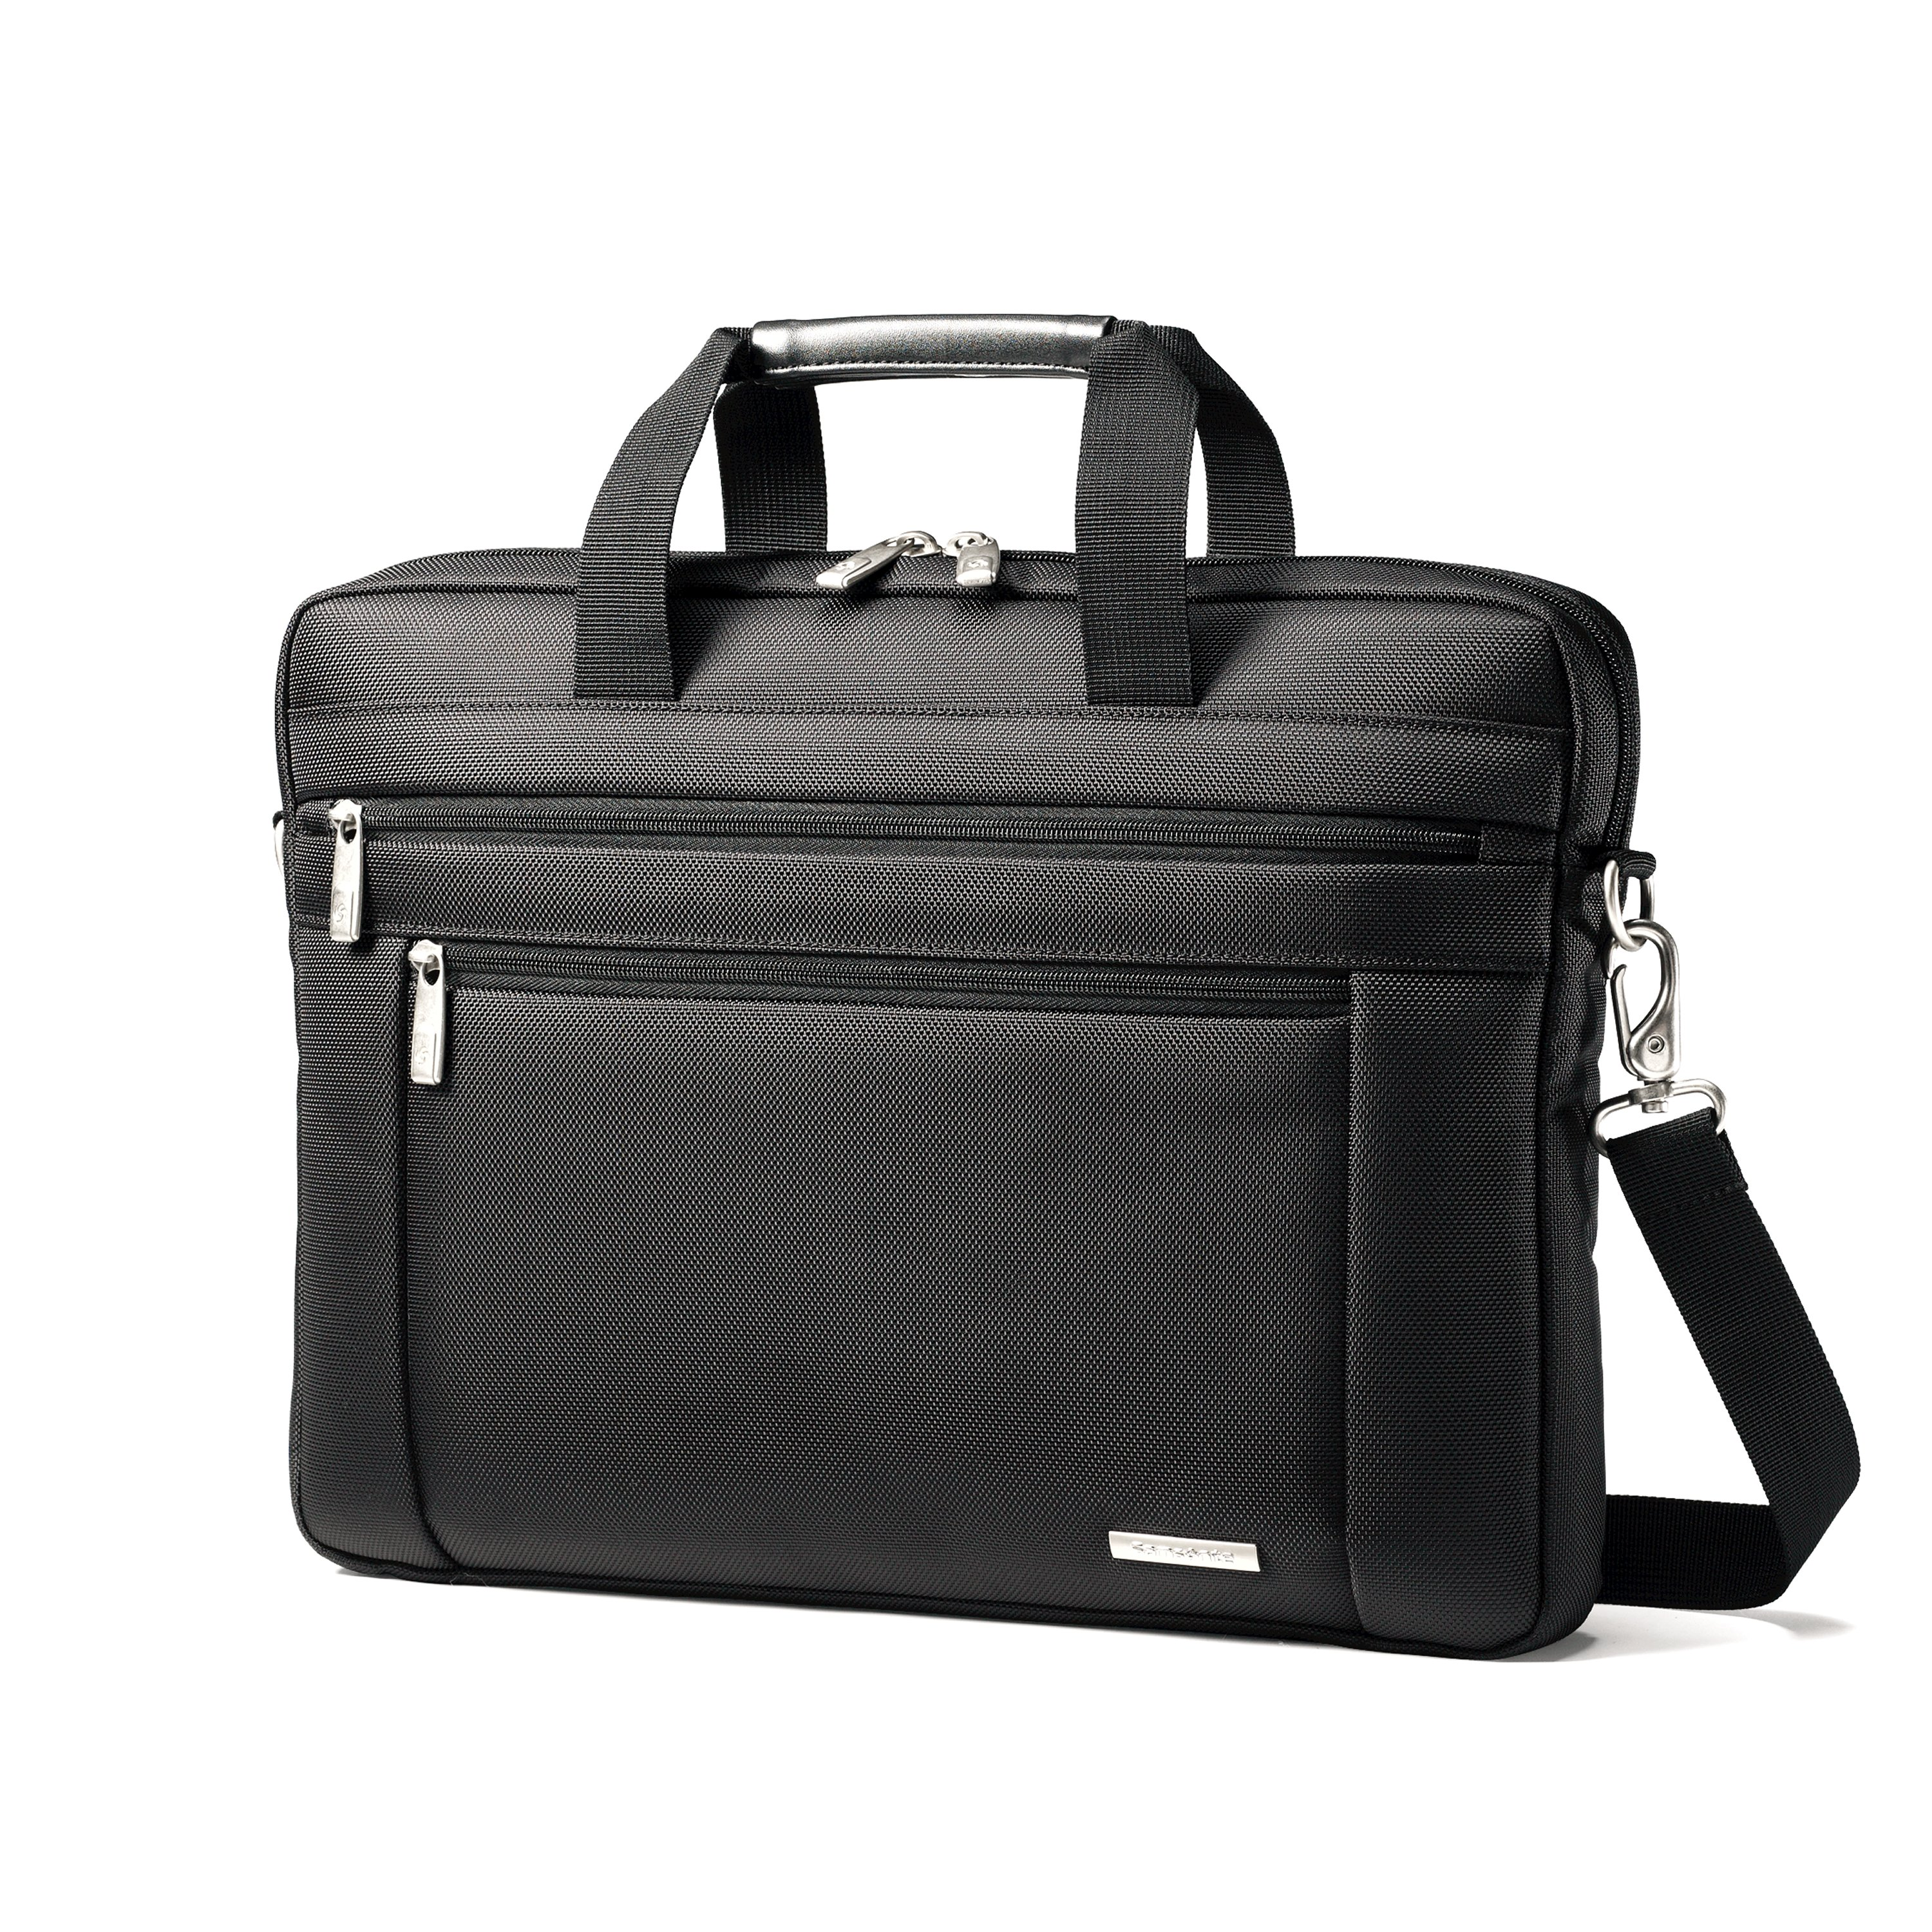 Constructed of rugged 1680 Ballistic fabric for durability Wrapped bale handles for comfort Easy access quick stash front pocket Padded laptop compartment Holds up to a 15.6  laptop. 3 Year Warranty. Weight: 1.5 lbs. Body Dimensions: 16.0  x 12.0  x 2.0